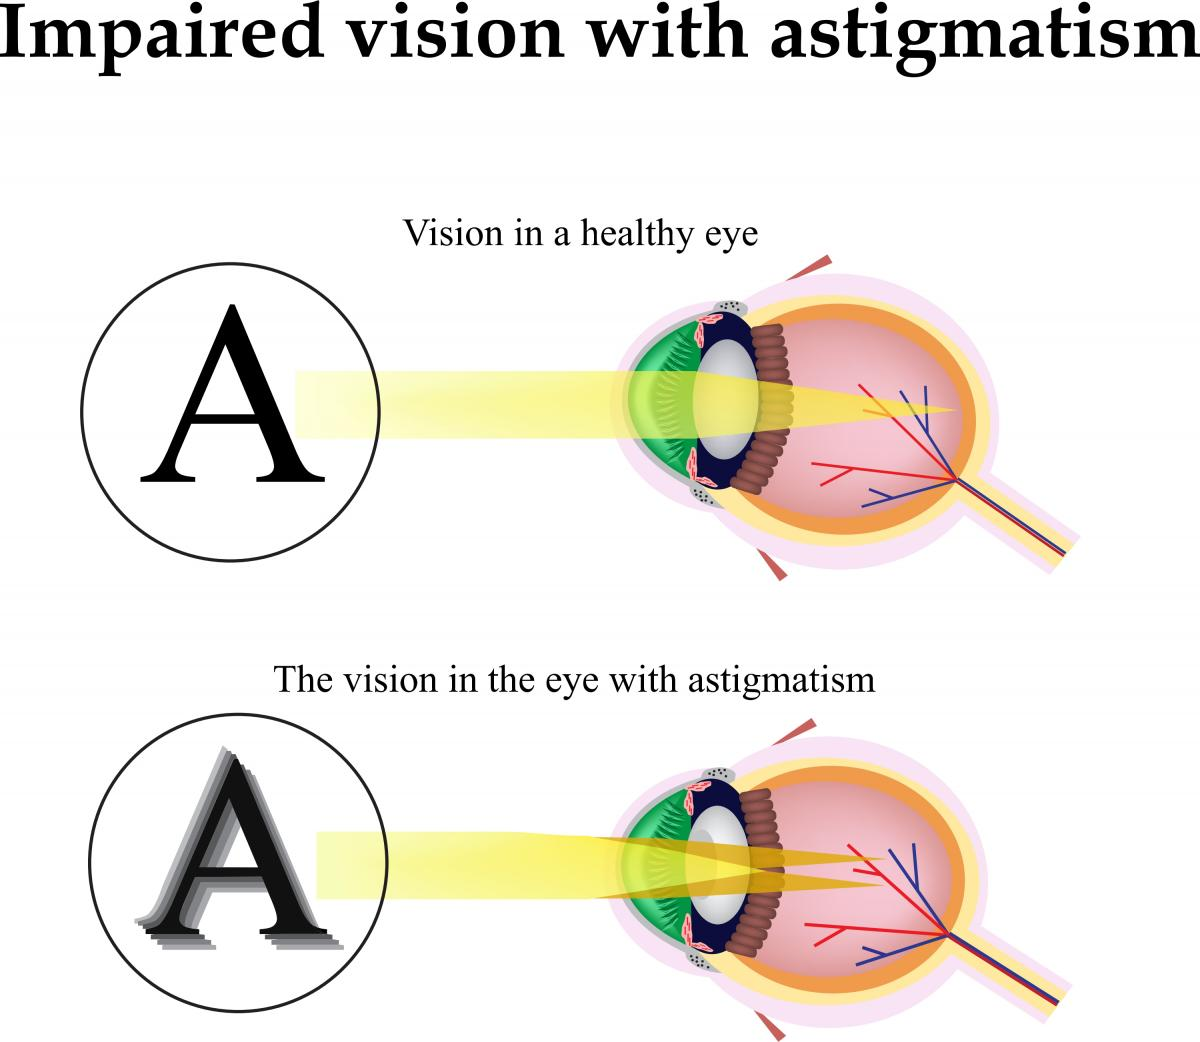 Can my astigmatism be corrected with cataract surgery?